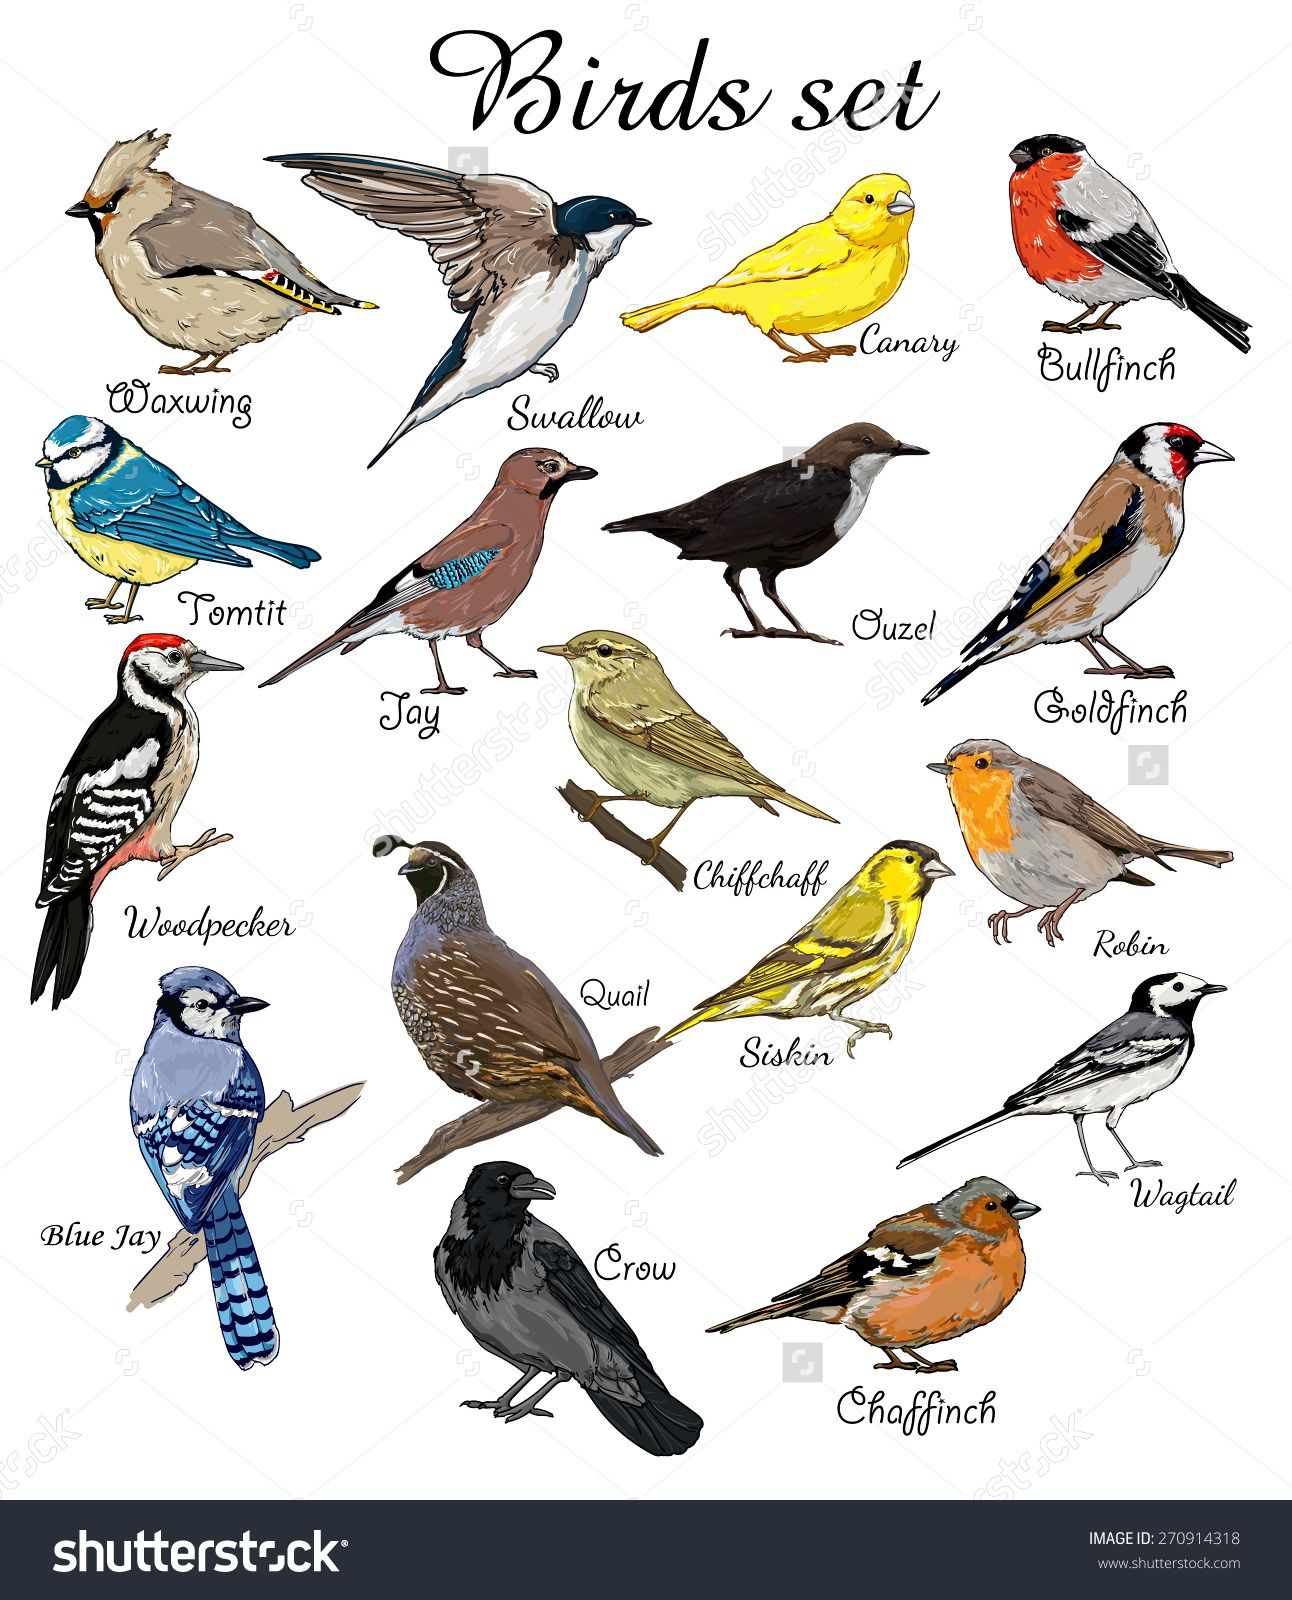 Big Set Birds Flying Animals Bird Silhouette Vector Crow BlueJay Canary Woodpecker Robin Chiffchaff Swallow Chaffinch Bullfinch